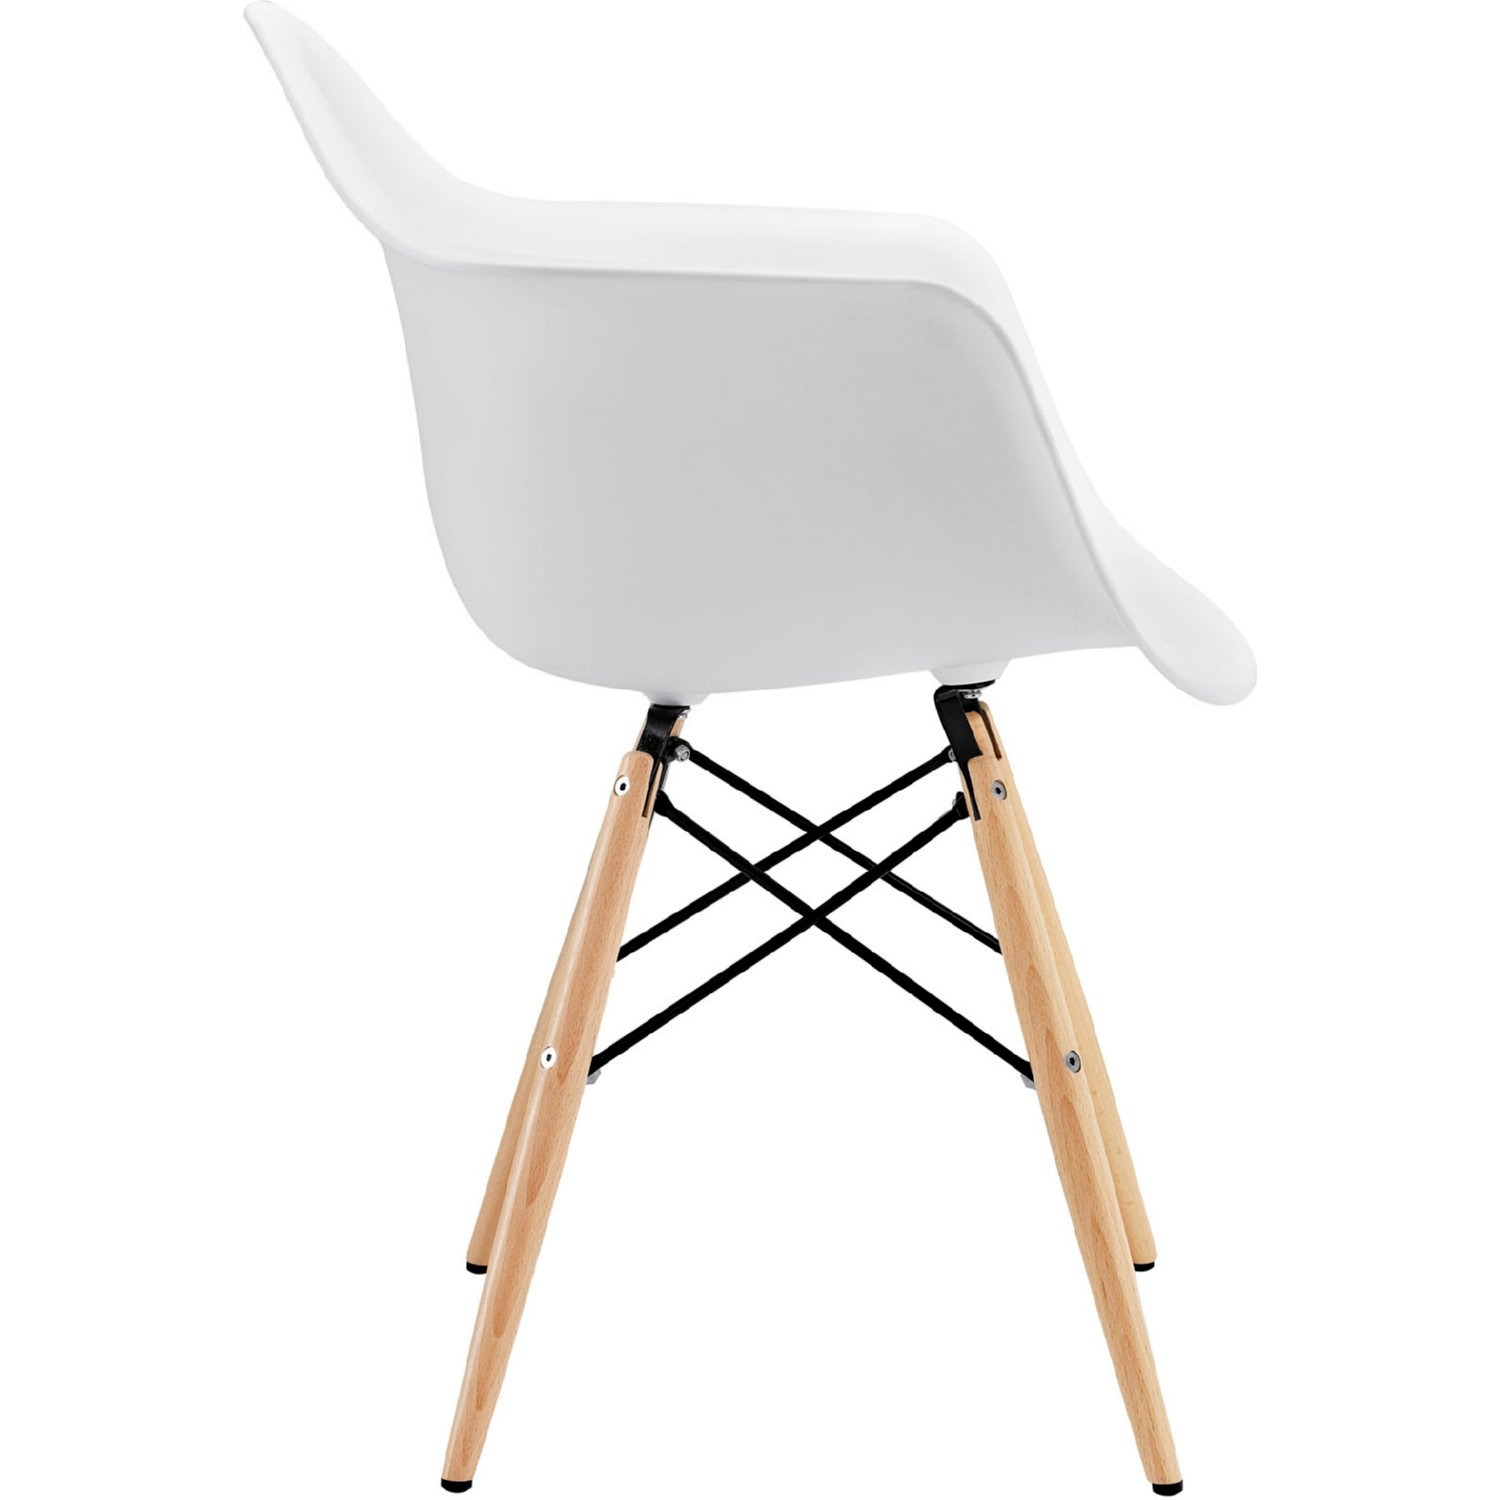 Modern Dining Armchair In White & Wood Base - image-1